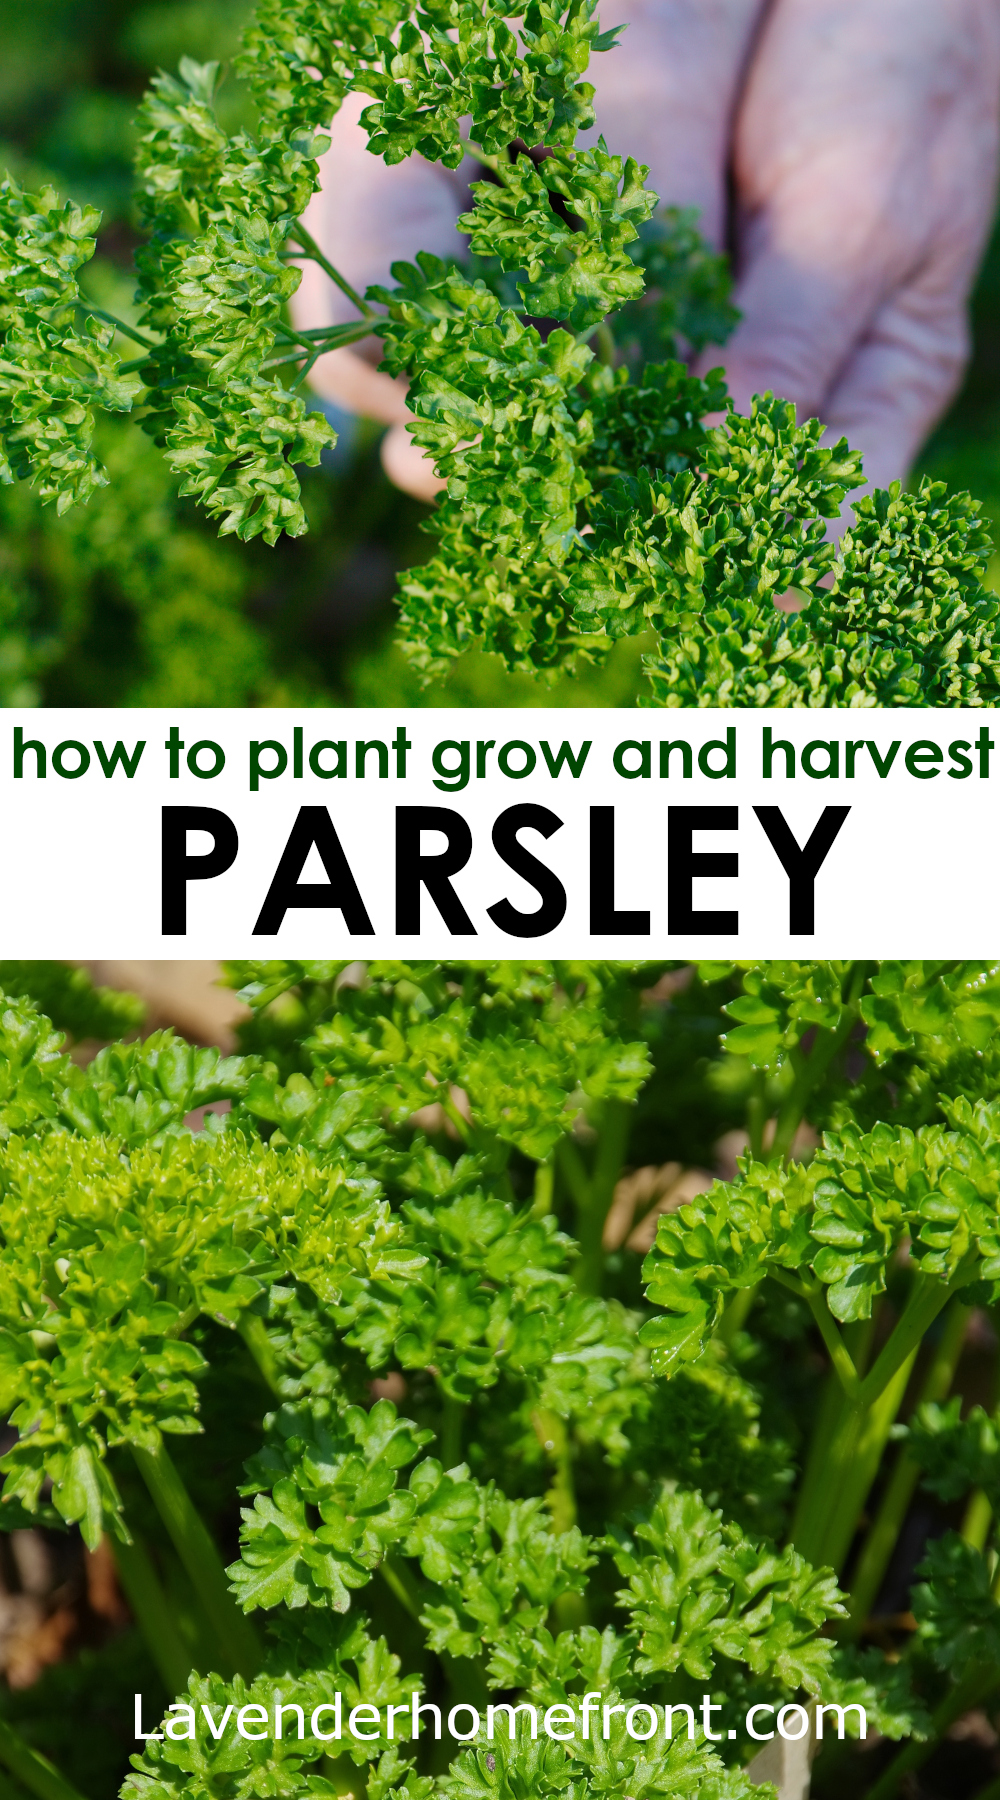 How to plant grow and harvest parsley pinnable image with text overlay.